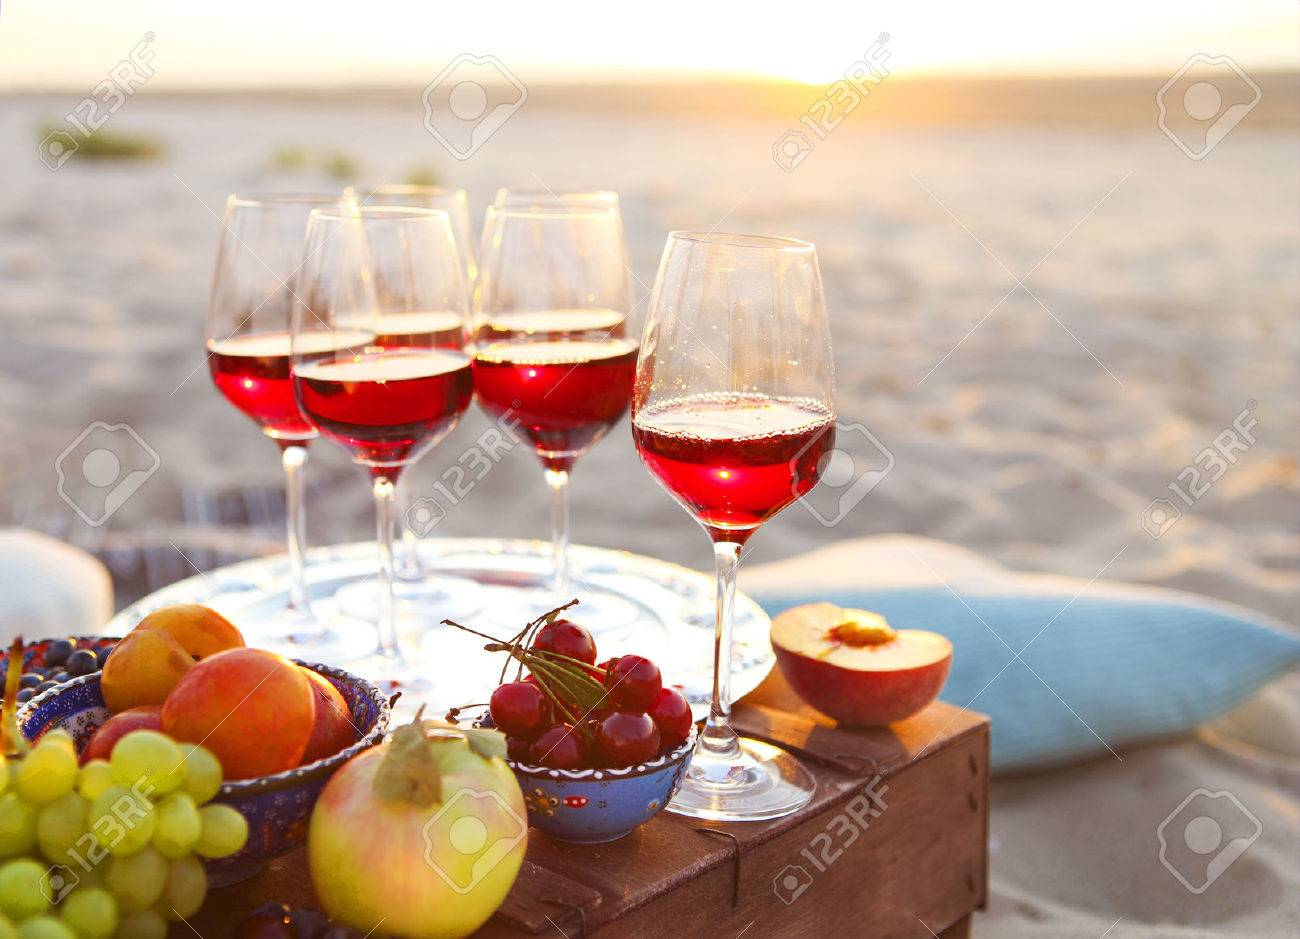 Glasses of the red wine on the sunset beach picnic - 52124916